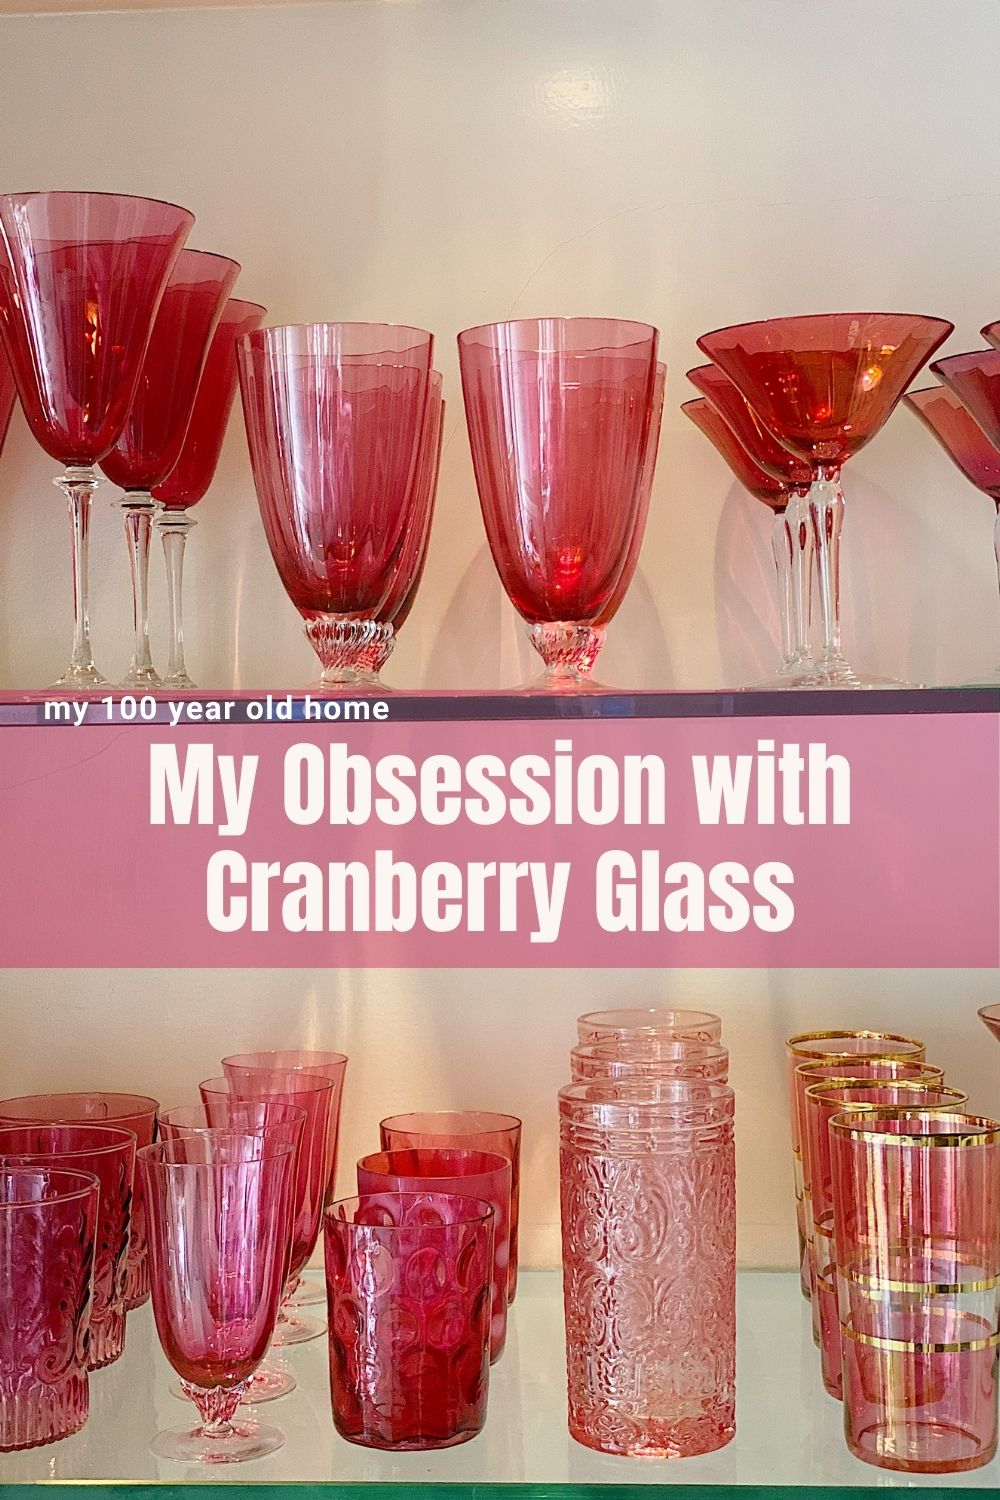 Most of you are aware that I like to collect vintage items. Like children, I do not have a favorite, but my go-to, most used vintage item, has got to be my cranberry glass.